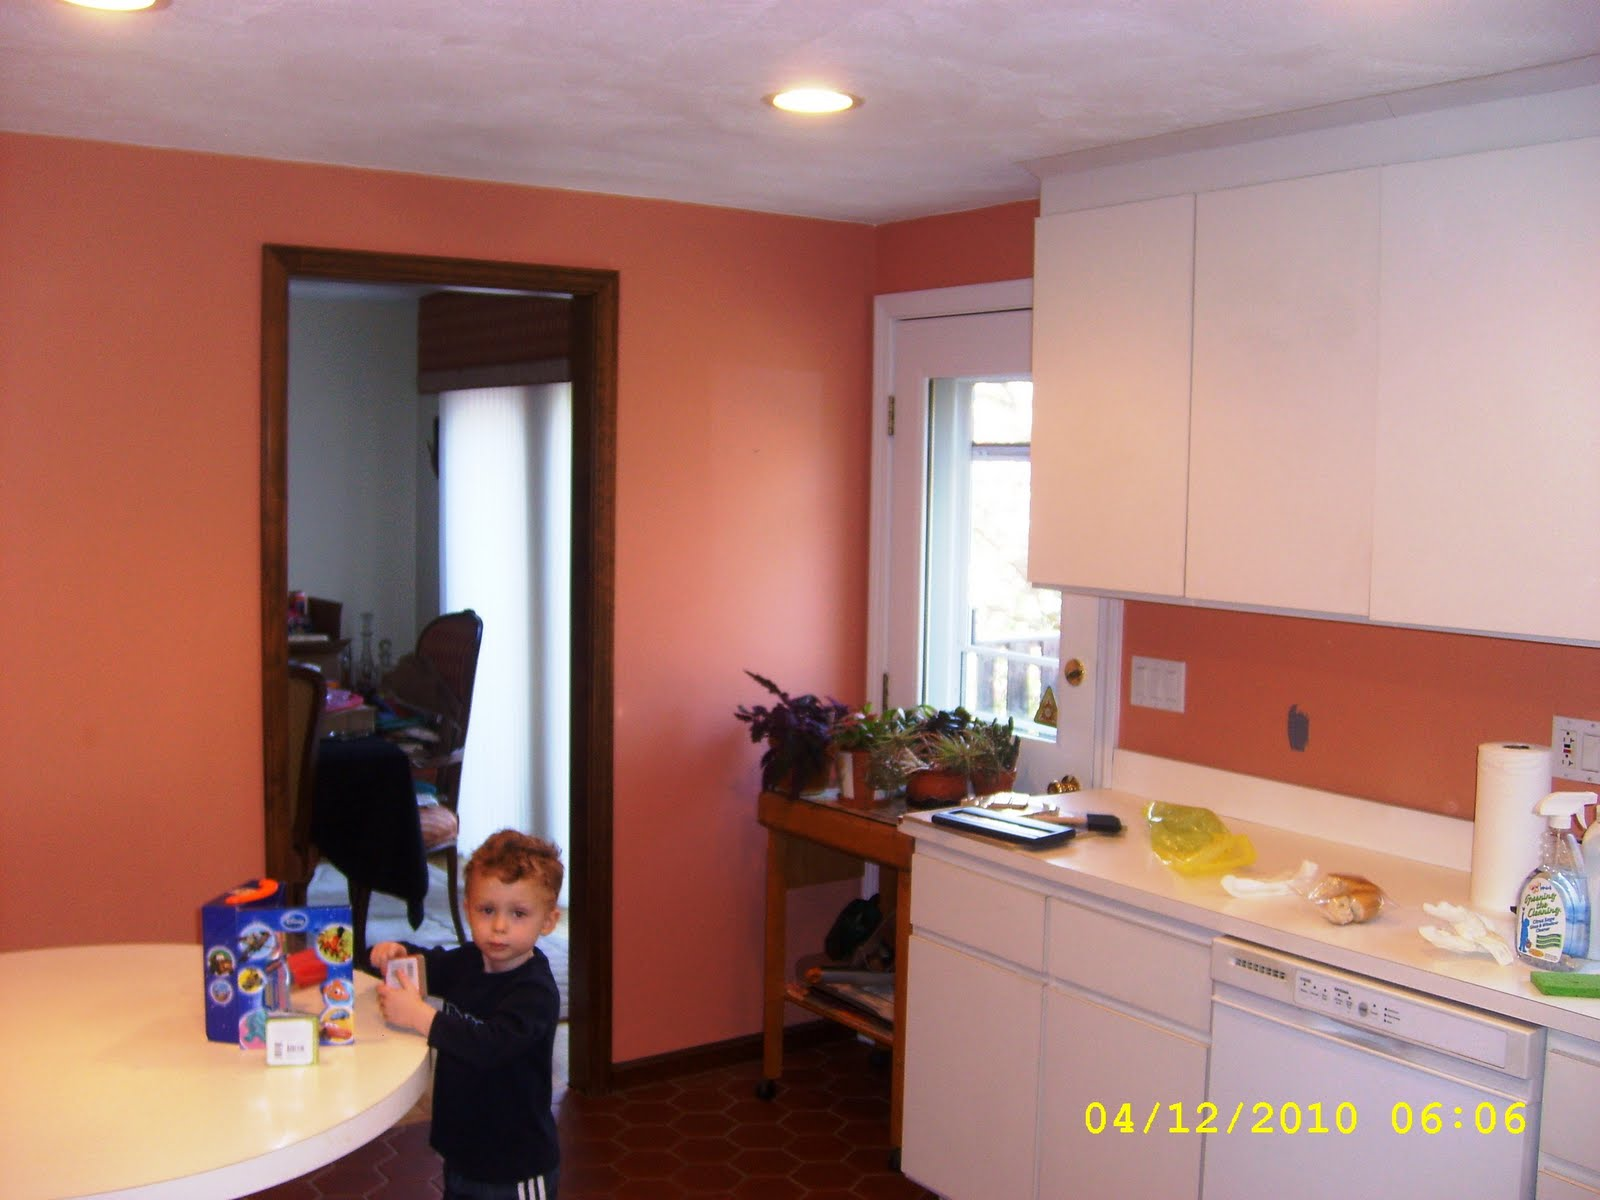 formica cabinets White formica countertops Coral colored walls